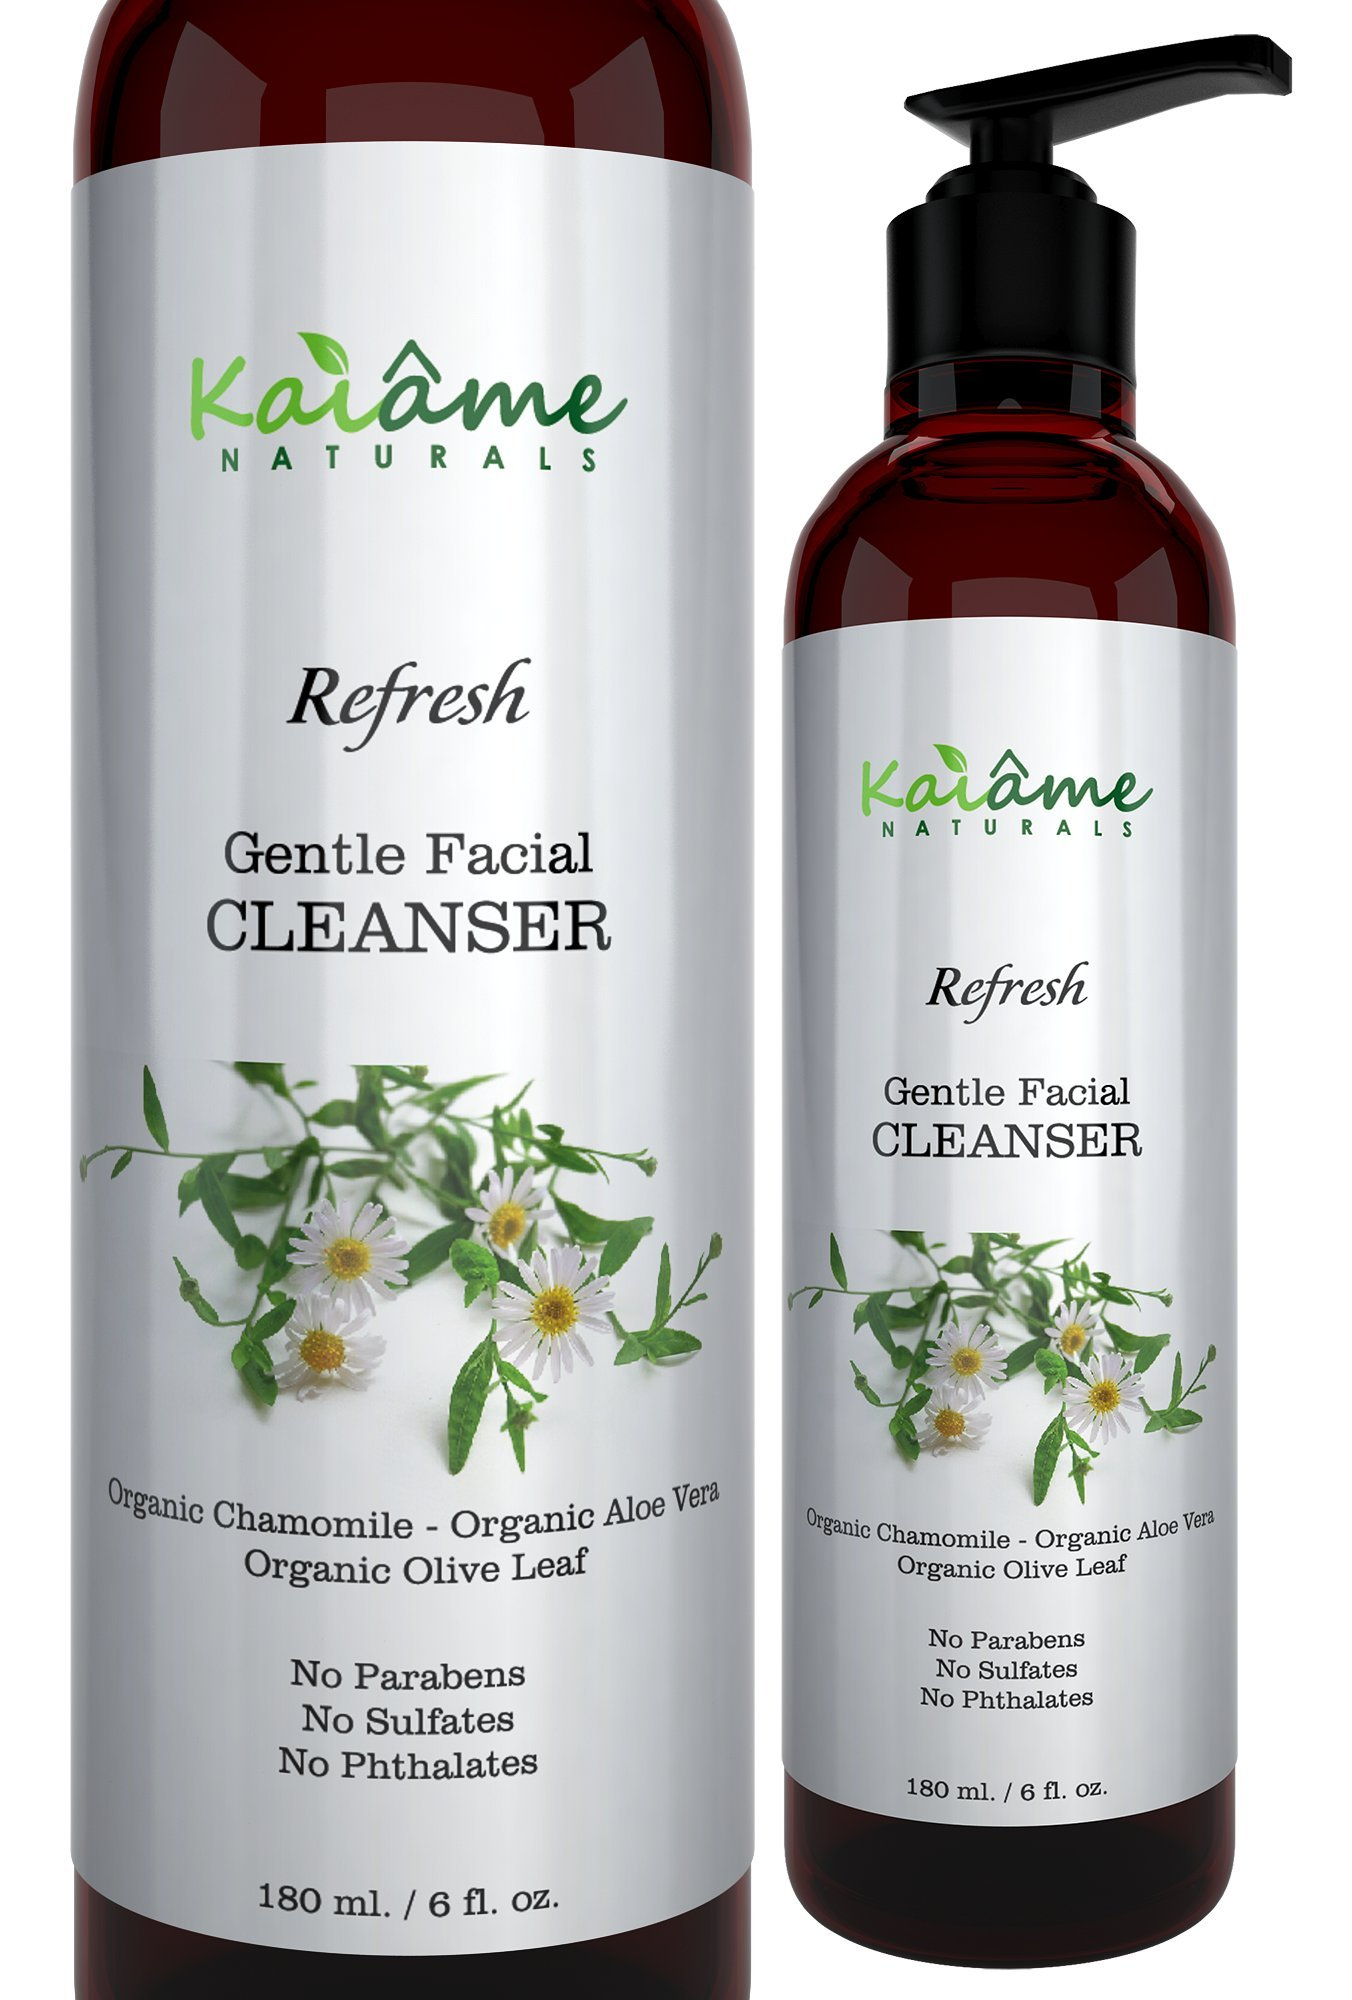 Kaiame Naturals Gentle Facial Cleanser for Women and Men | 6 oz | All Natural and Organic | For All Skin Types | Anti-Aging | Exfoliates and Moisturizes